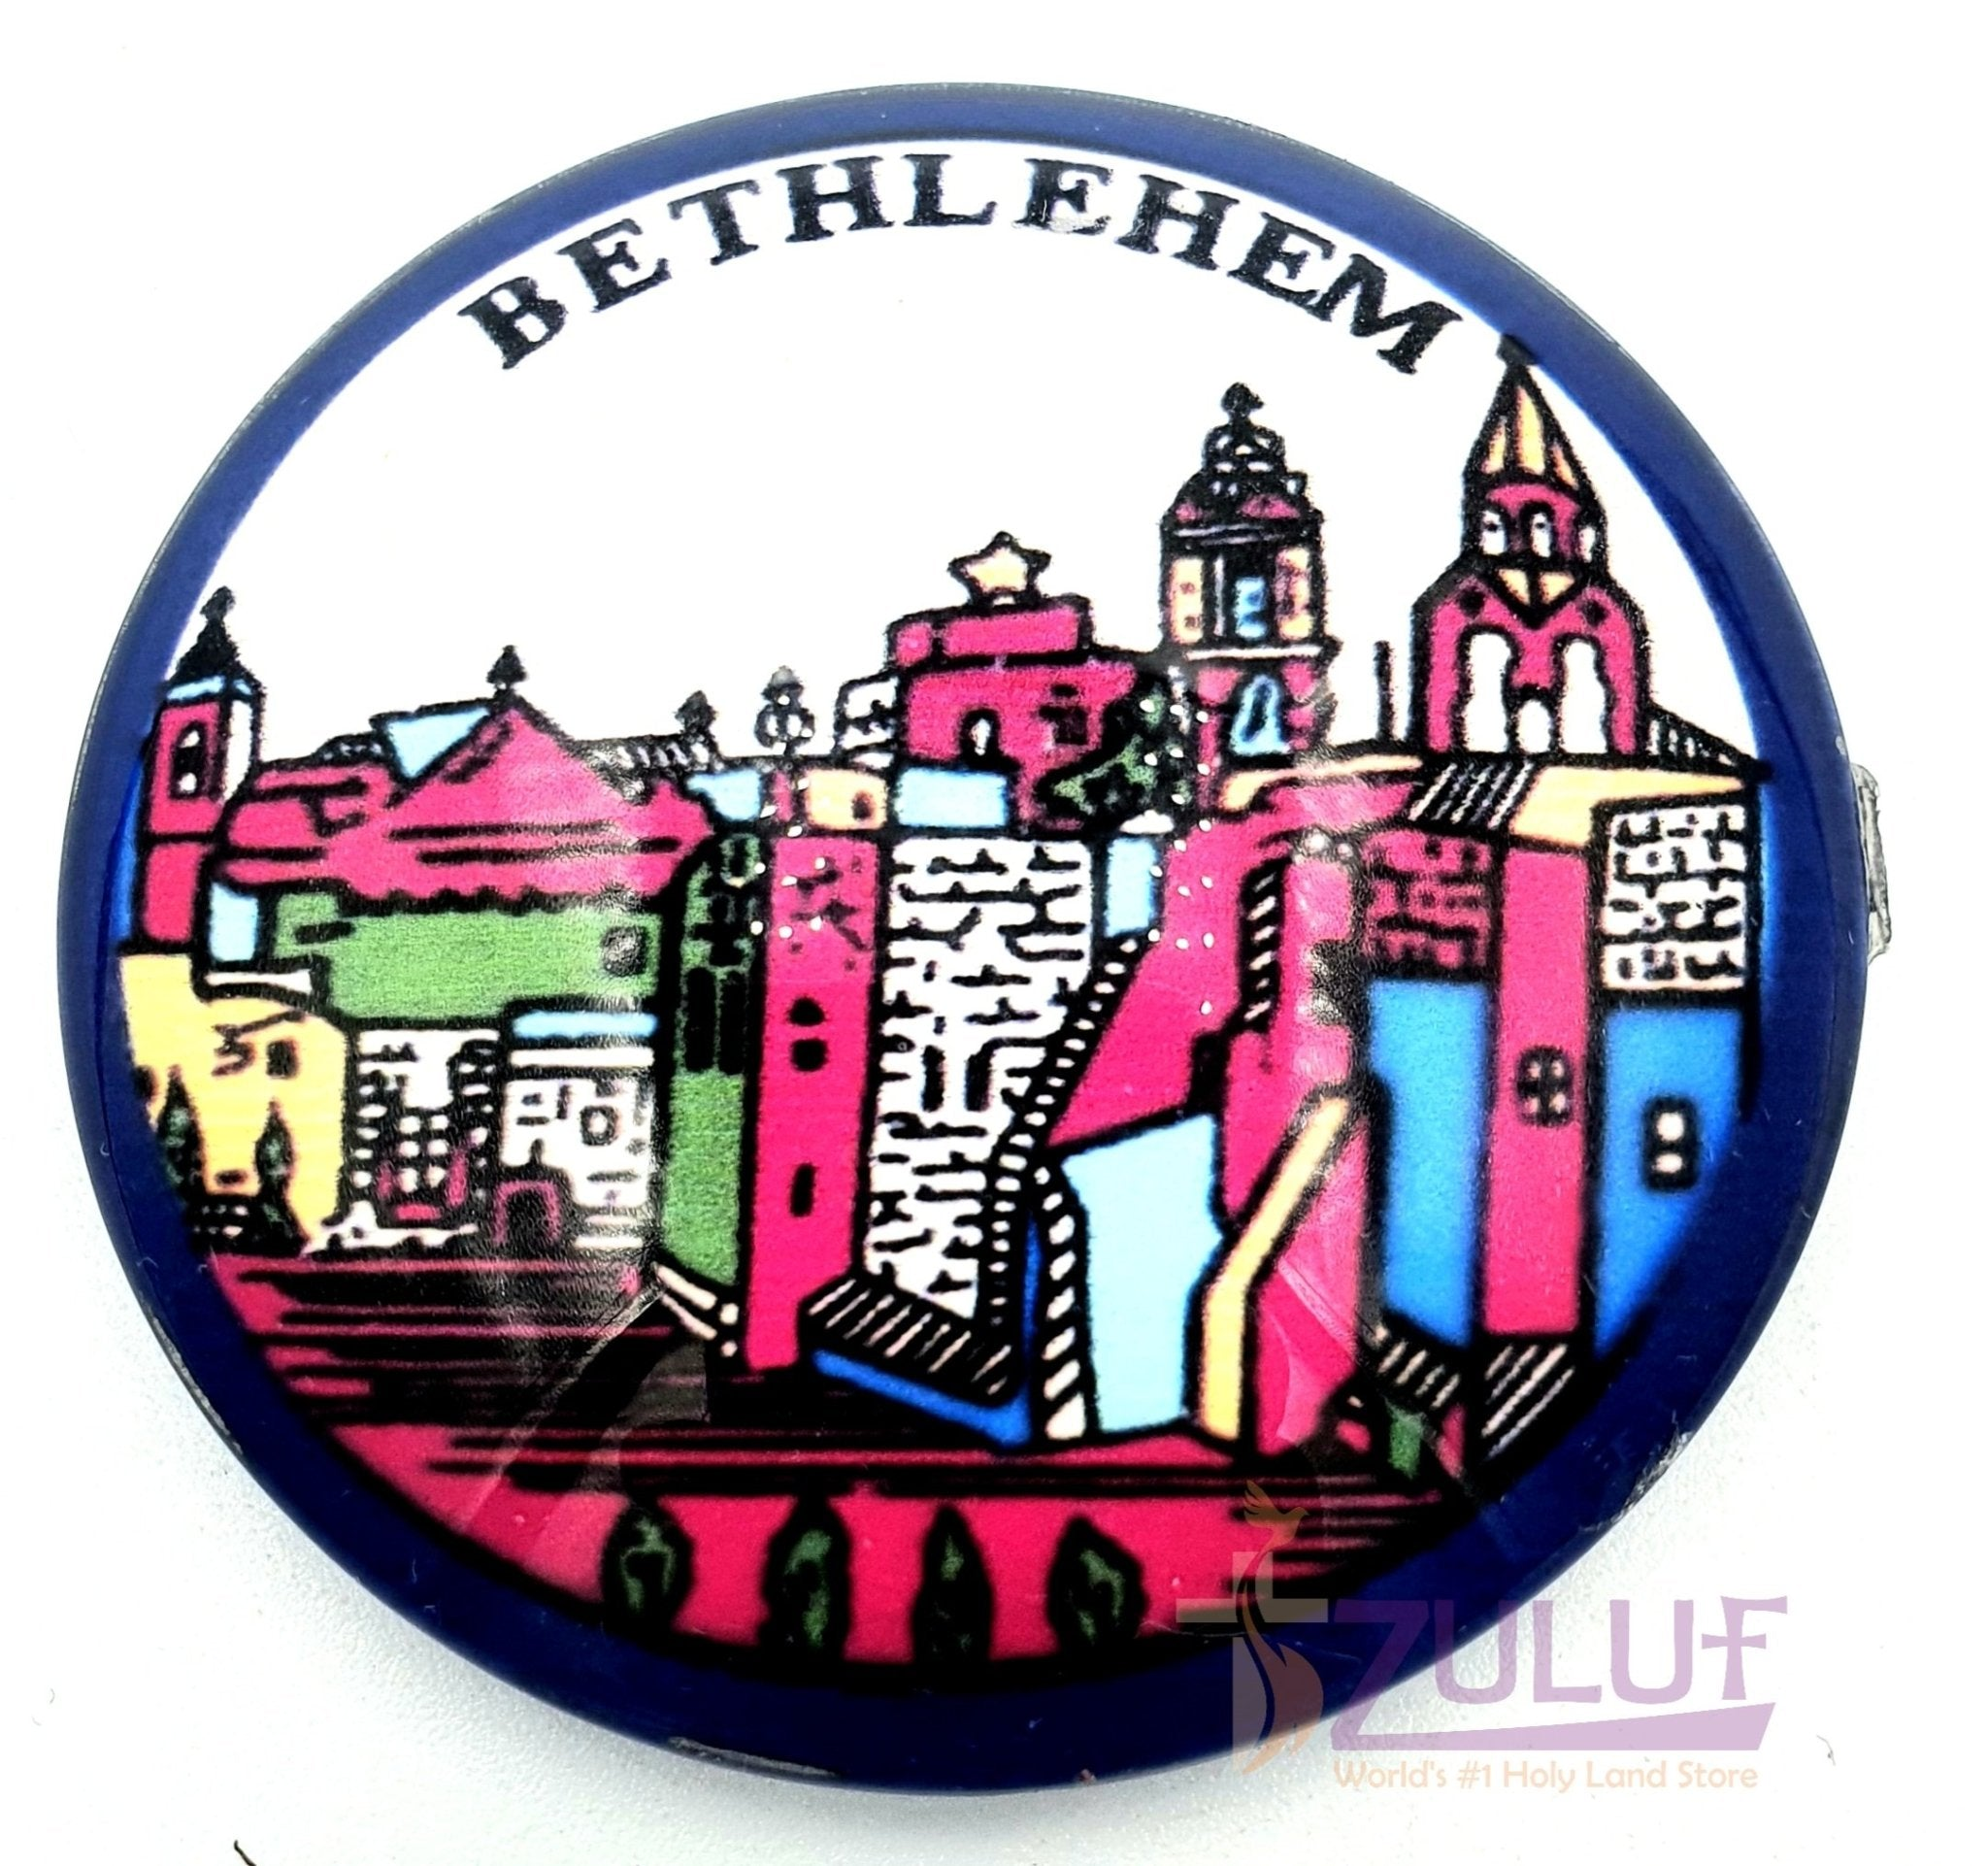 Bethlehem Holy Land City Round Glass Circle Magnet Mag101 - Zuluf